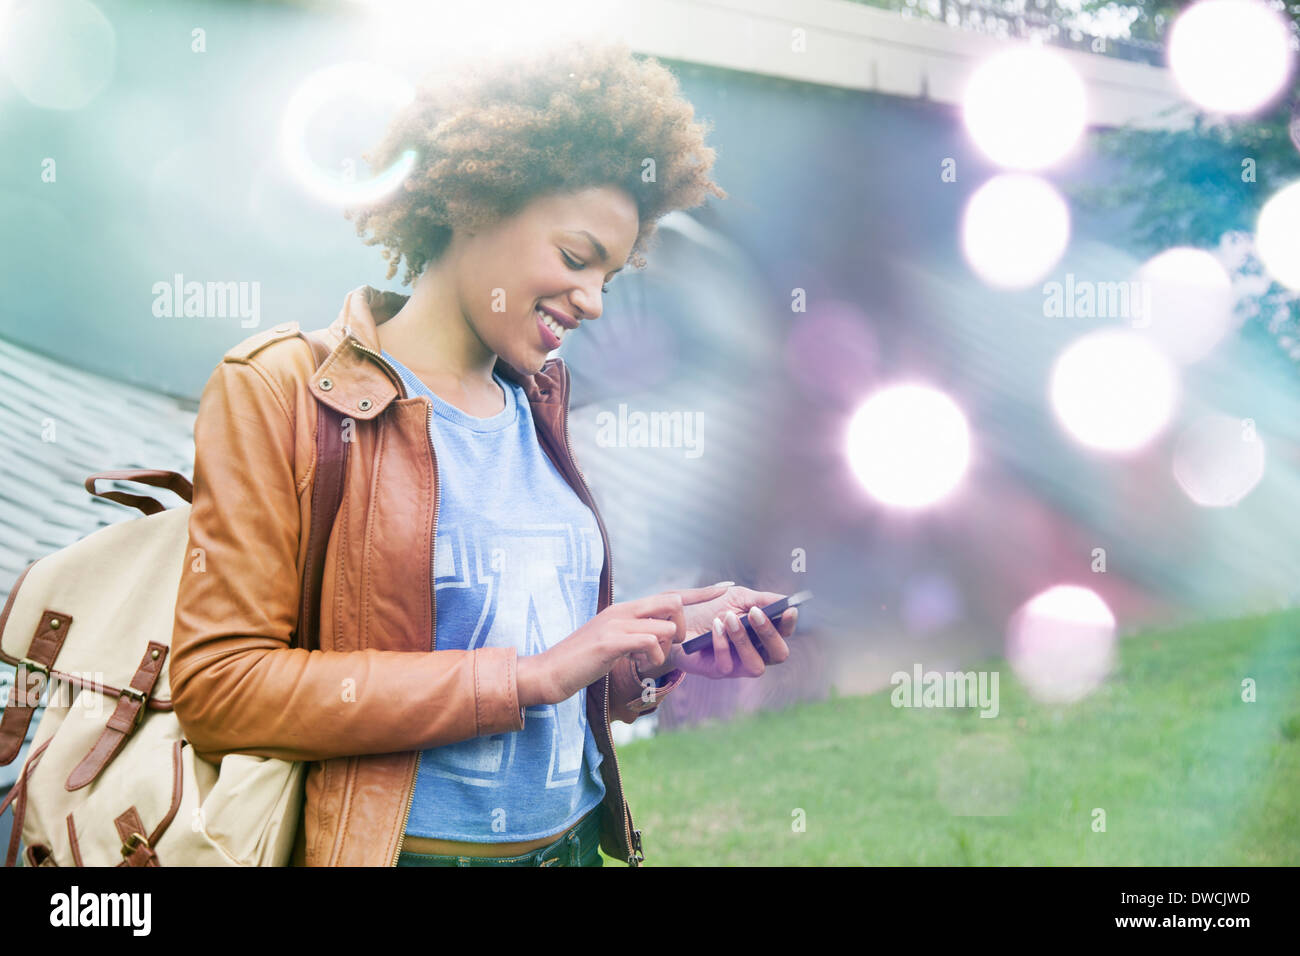 Glowing lights and young woman using smartphone - Stock Image